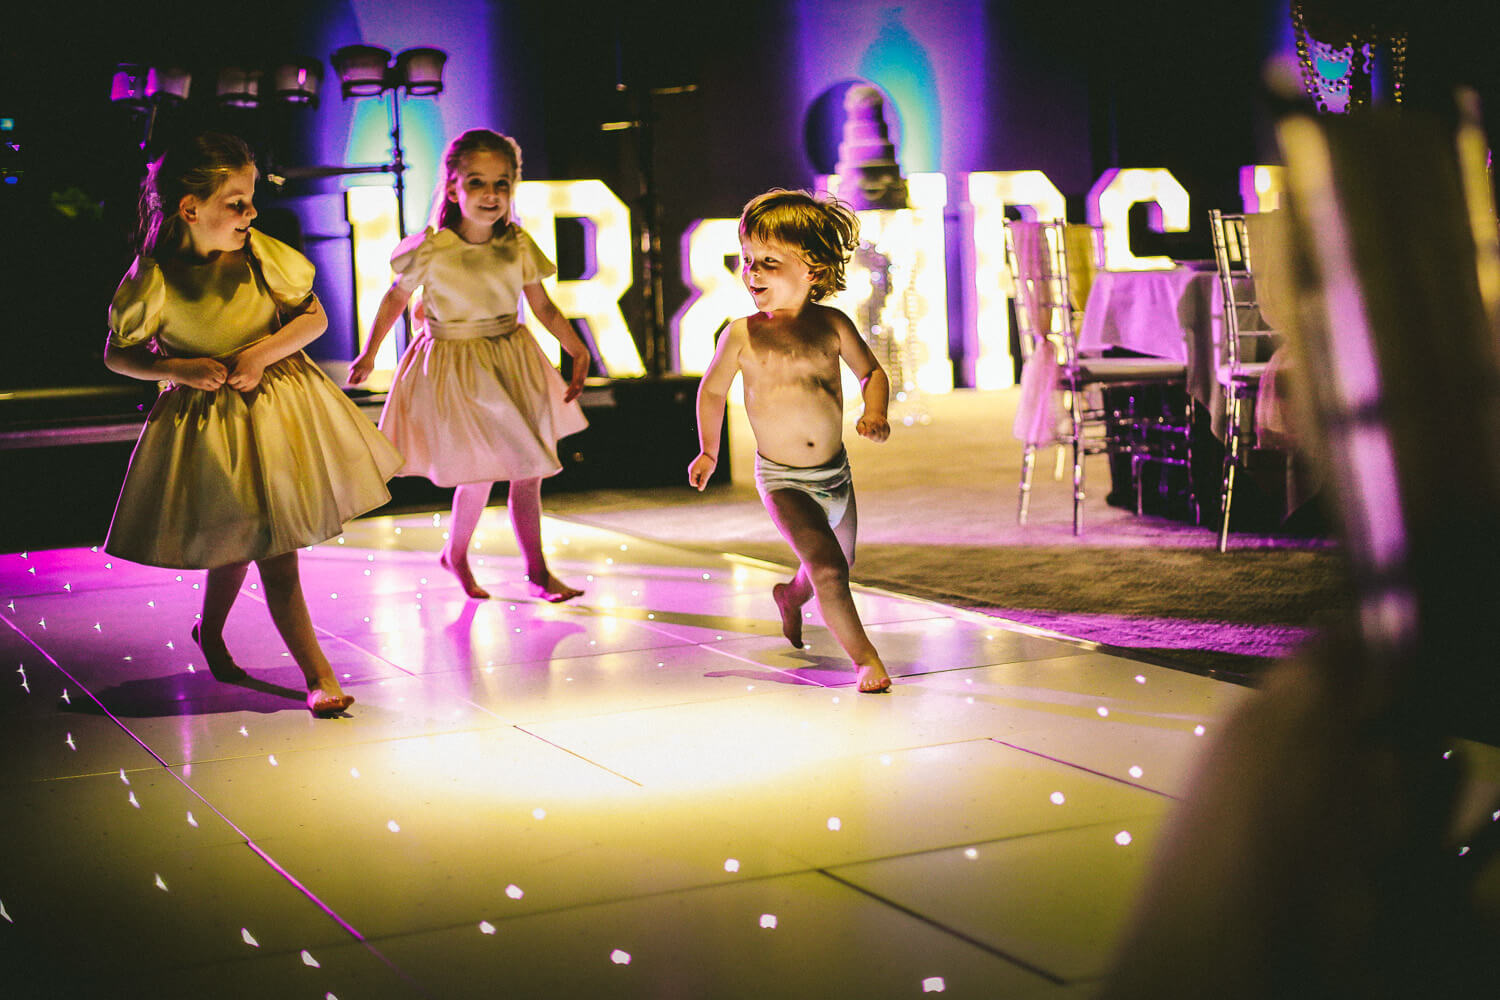 Flower girls chasing little boy in nappy on dance floor Titanic Hotel Wedding Liverpool.